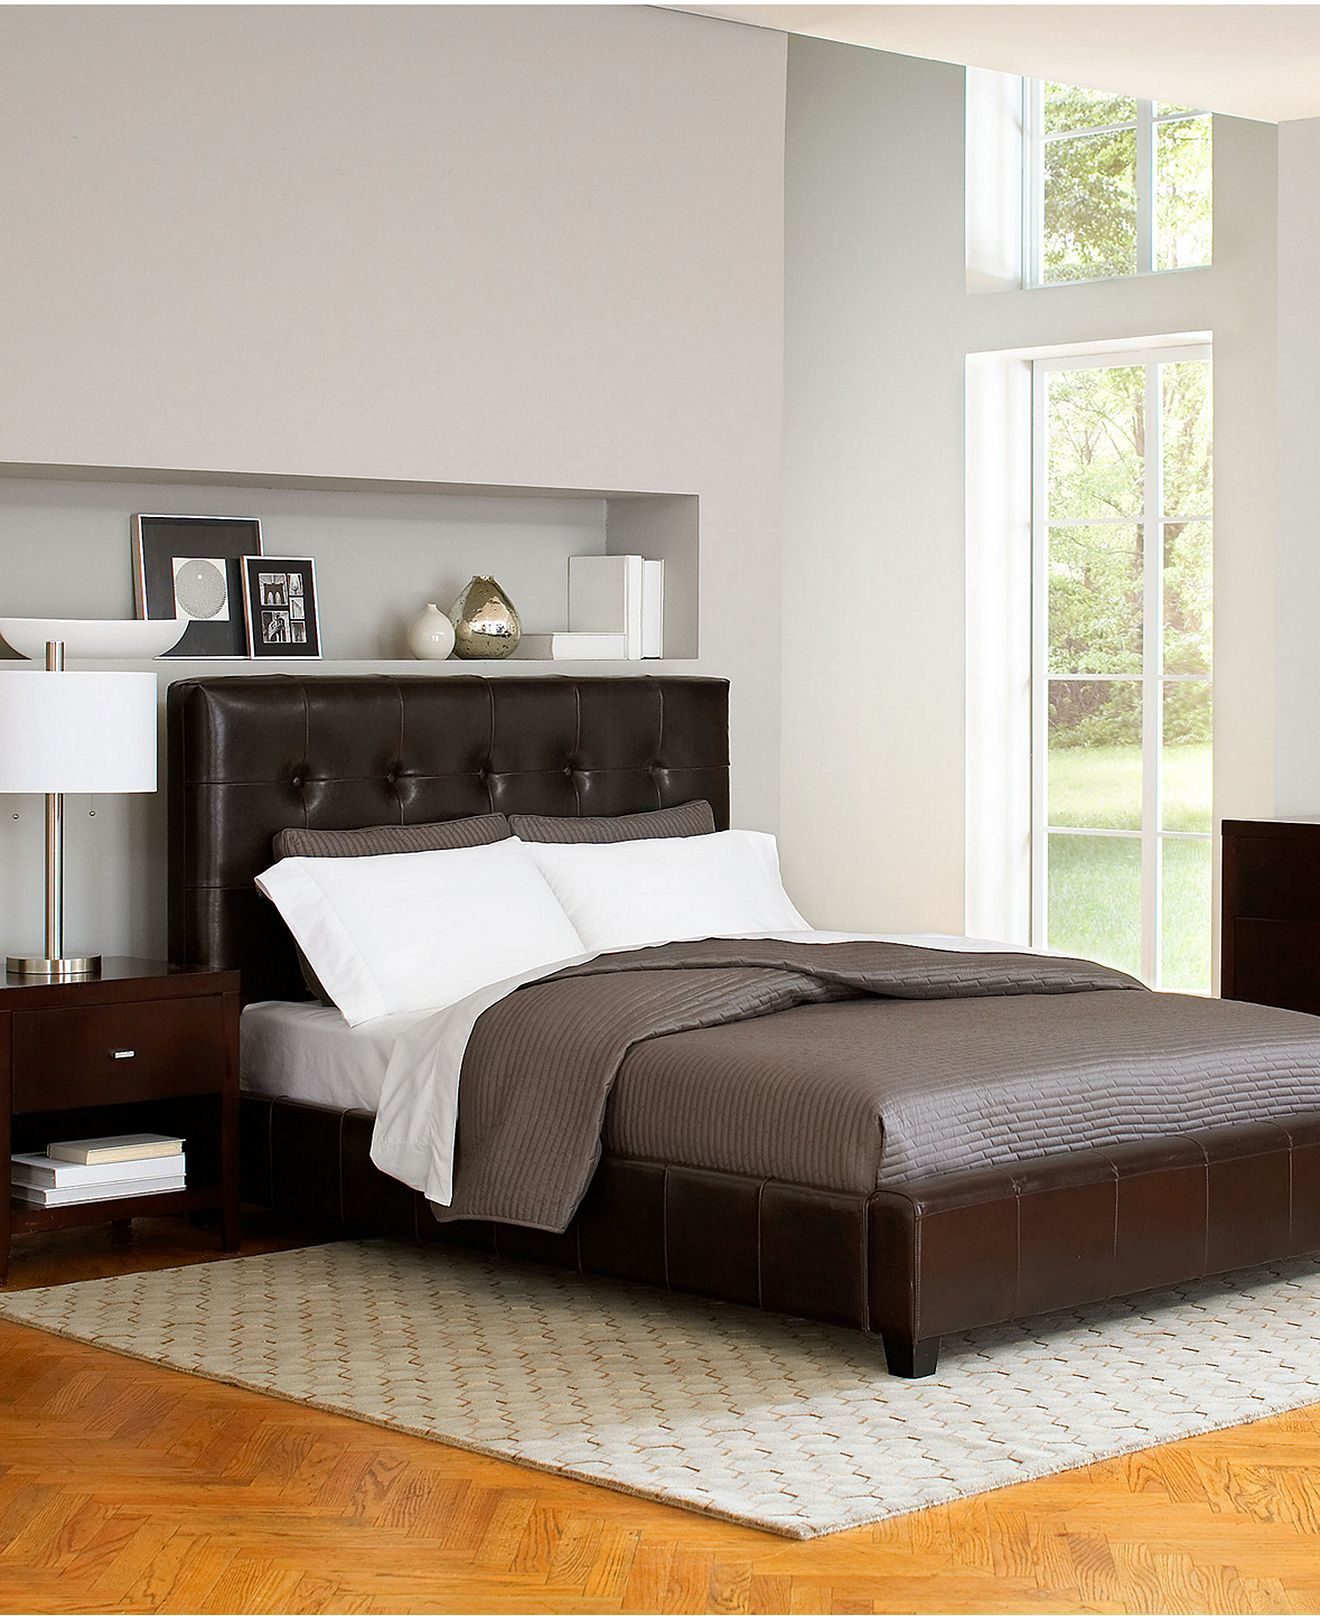 Hawthorne Bedroom Furniture Collection furniture Macy